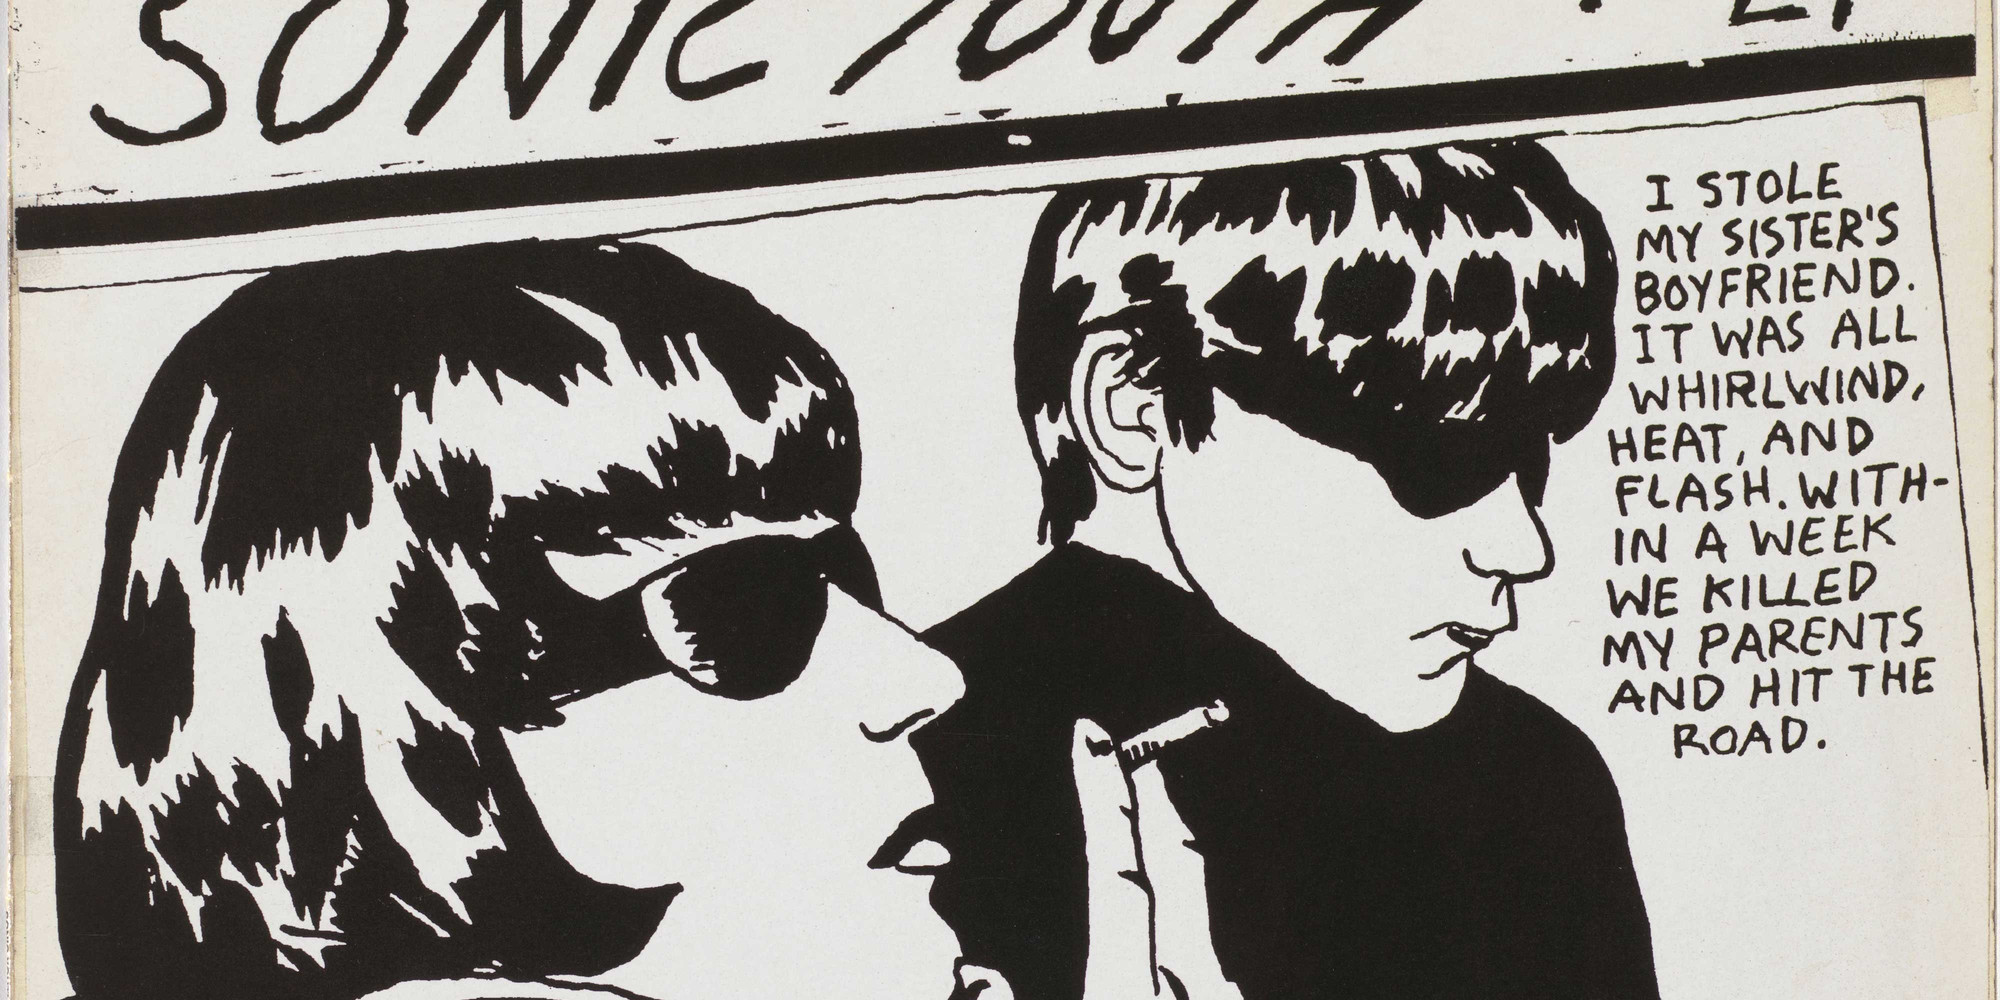 "Sonic Youth with (cover) Raymond Pettibon. Goo. 1990. 12-inch vinyl record, cover: 12 5/16 × 12 3/8 × 1/16"" (31.2 × 31.4 × 0.2 cm). Publisher: David Geffen Company, Los Angeles, CA. Acquired from The Eileen and Michael Cohen Collection through the The Sue and Edgar Wachenheim III Endowment. © 2020 Raymond Pettibon"